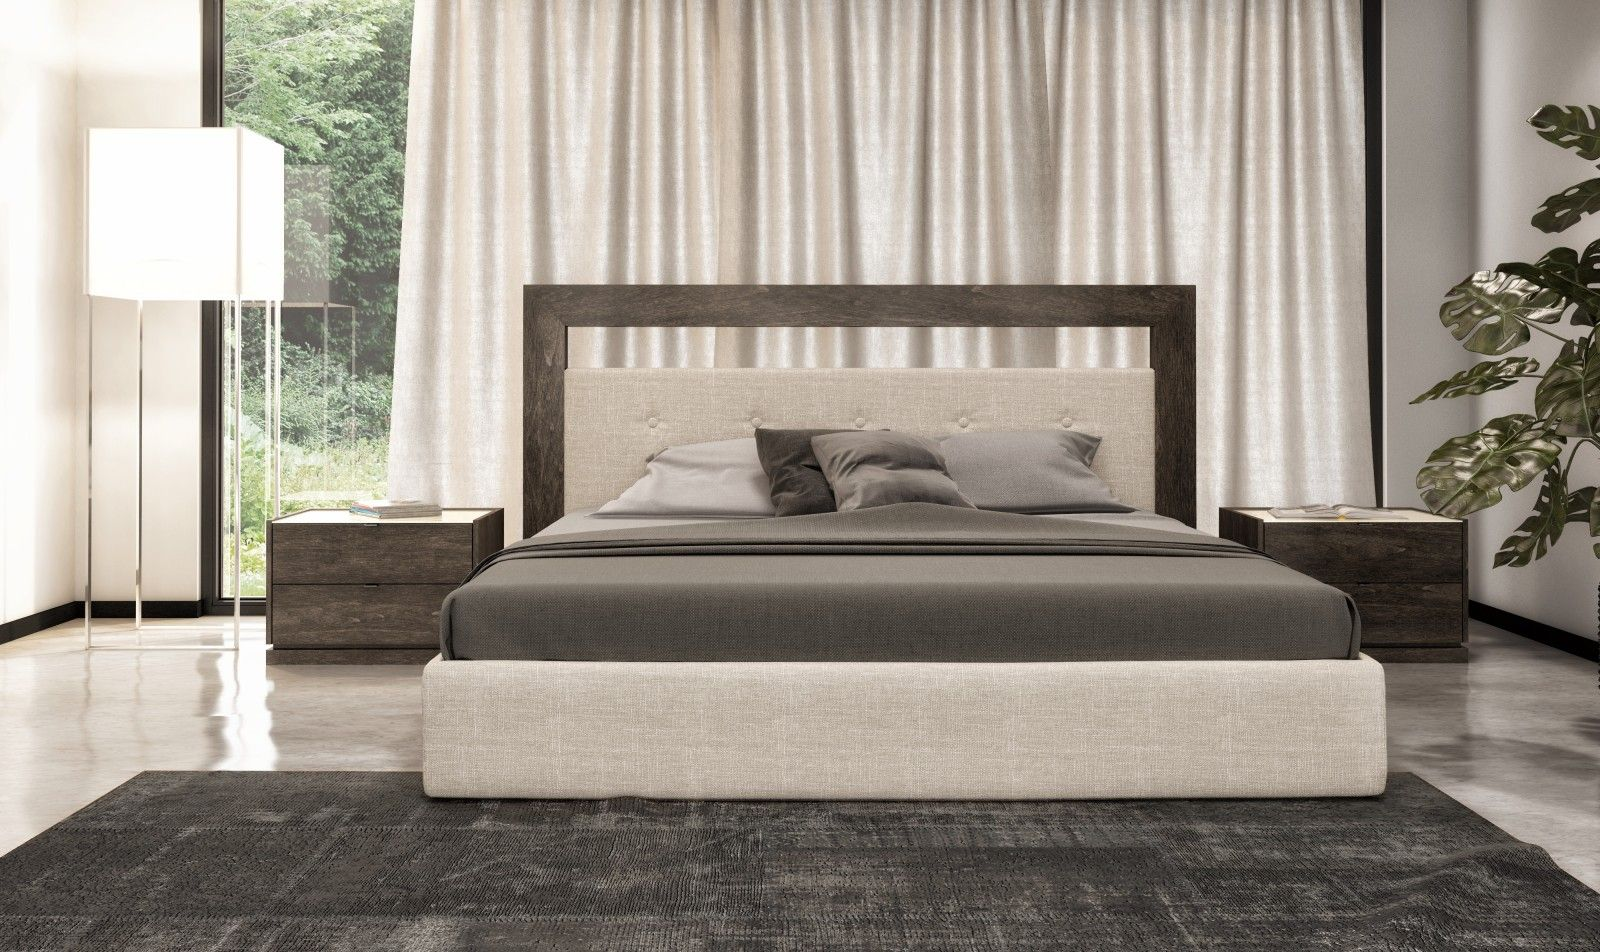 Timeless and sophisticated the Clo bedroom collection